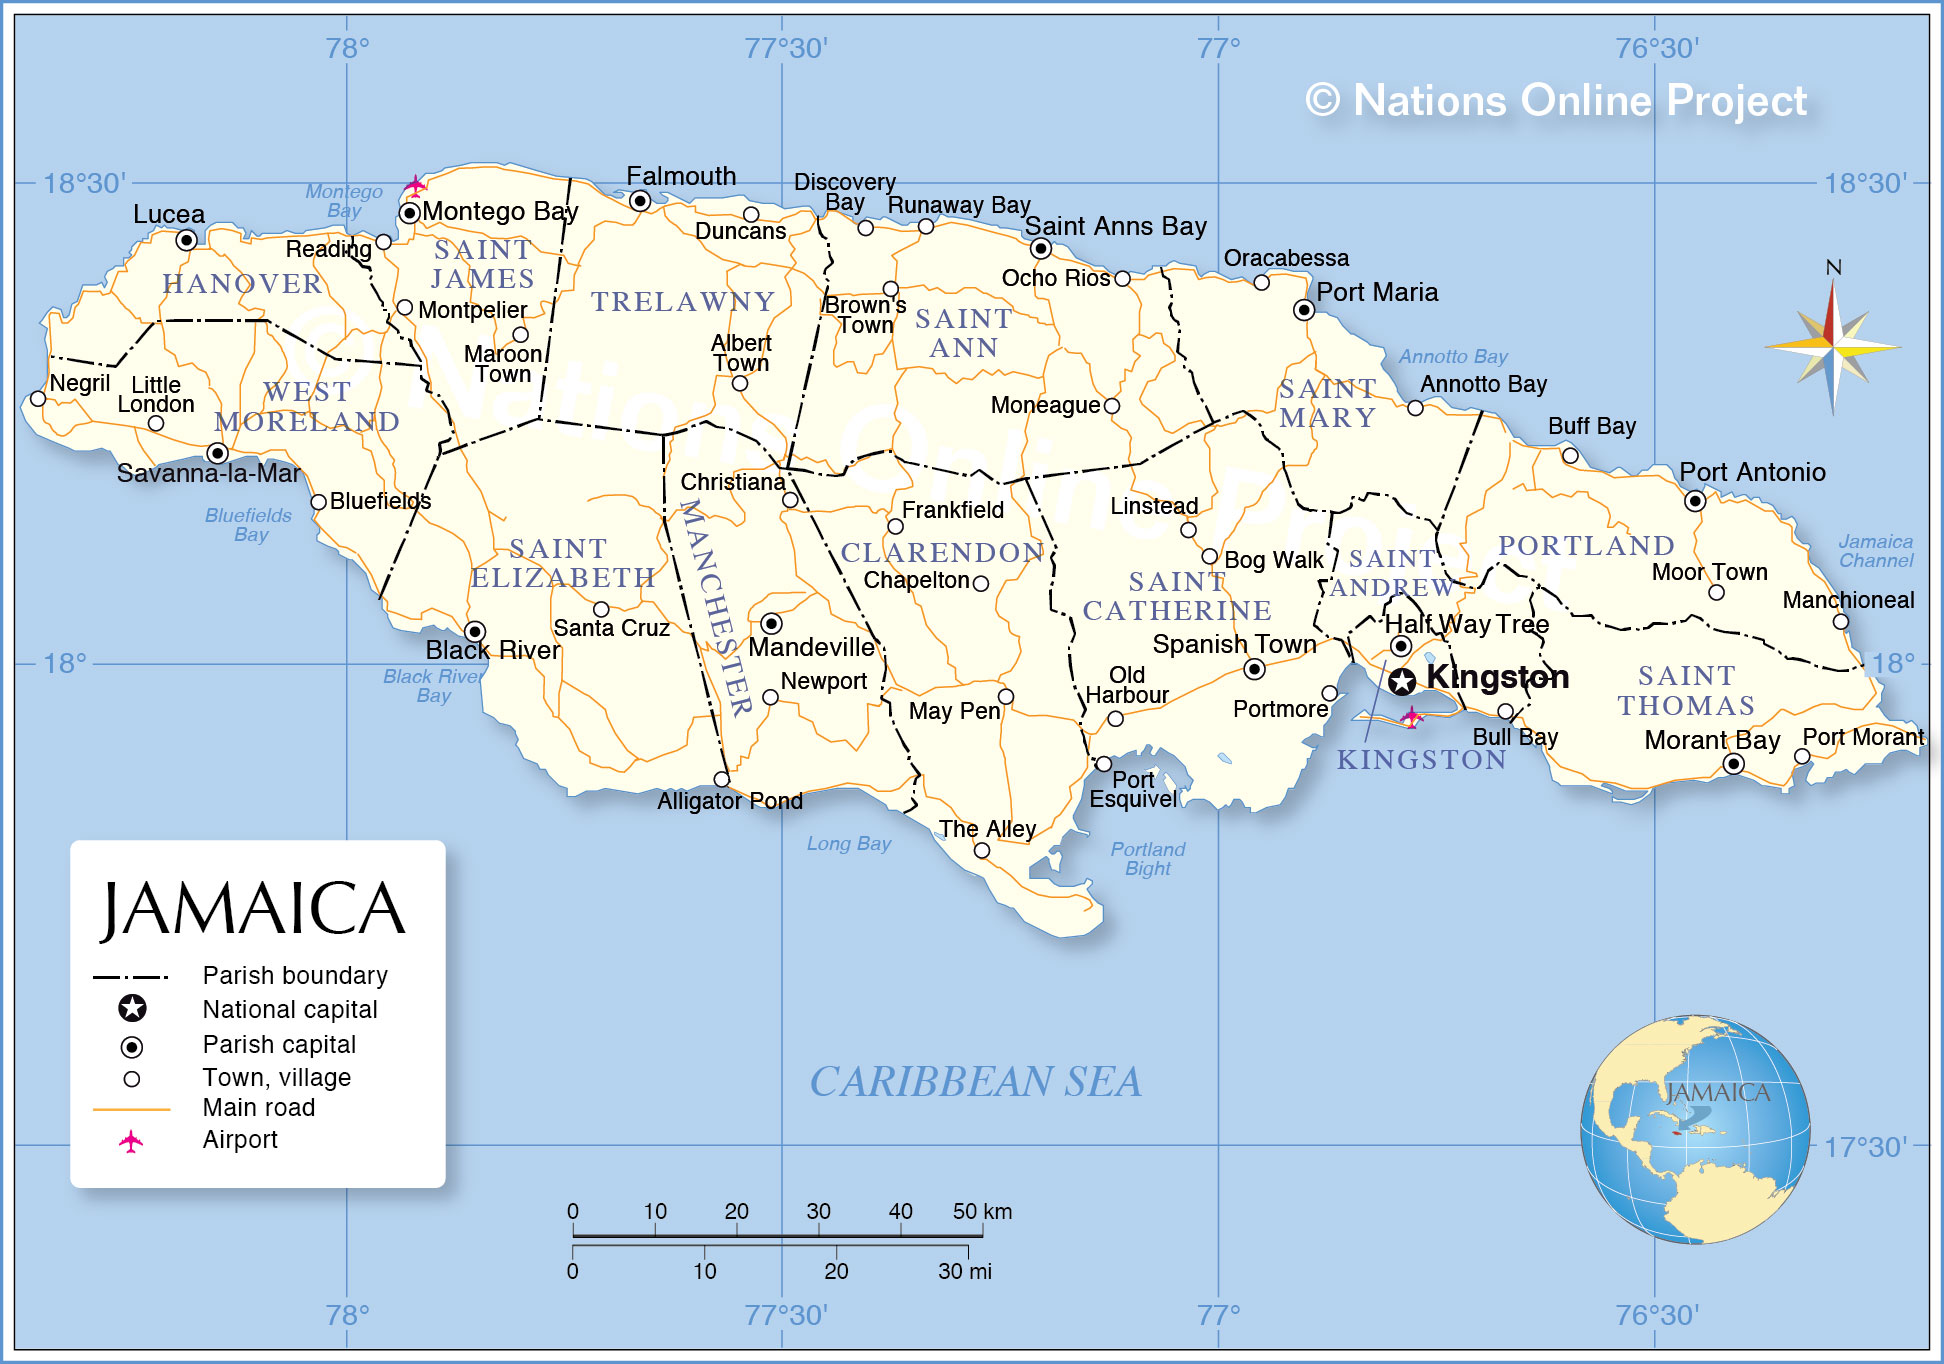 Jamaica Area Framed Extracted Global Administrative Map Van Der Grinten